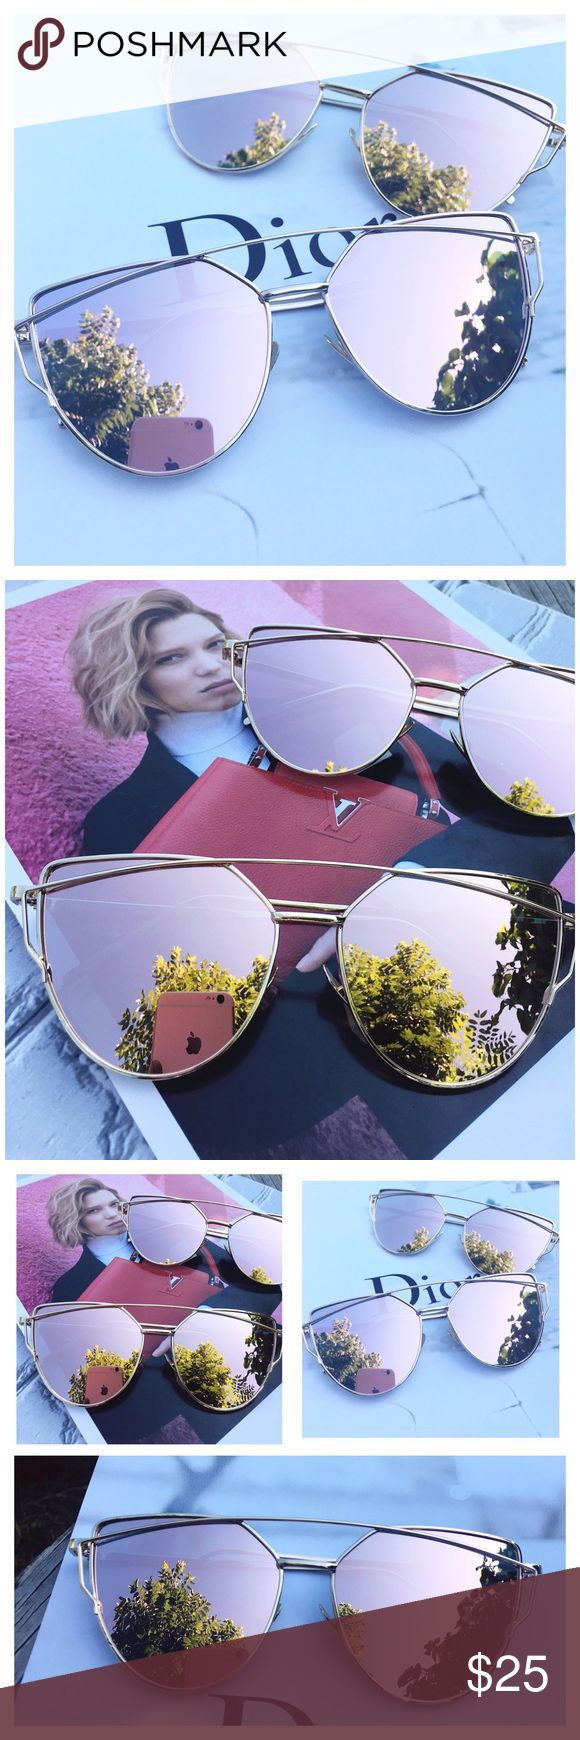 ✨2X HP✨Rose Gold Mirrored Sunglasses Fall Favorites Host Pick! Girly Girl Host Pick! Restocked! Cat Eye Aviator Sunglasses. This listing is for a pair of Cat Eye aviator sunshades. Rose Gold Mirrored Sunglasses. Retro. Sunglasses. Wire sunglasses. Trending sunglasses. UV protection. Top quality! Brand new! Bundle and save!                                                                       ✨1 for $20, 2 for $30, 3 for $40✨ тнαик уσυ Accessories Sunglasses